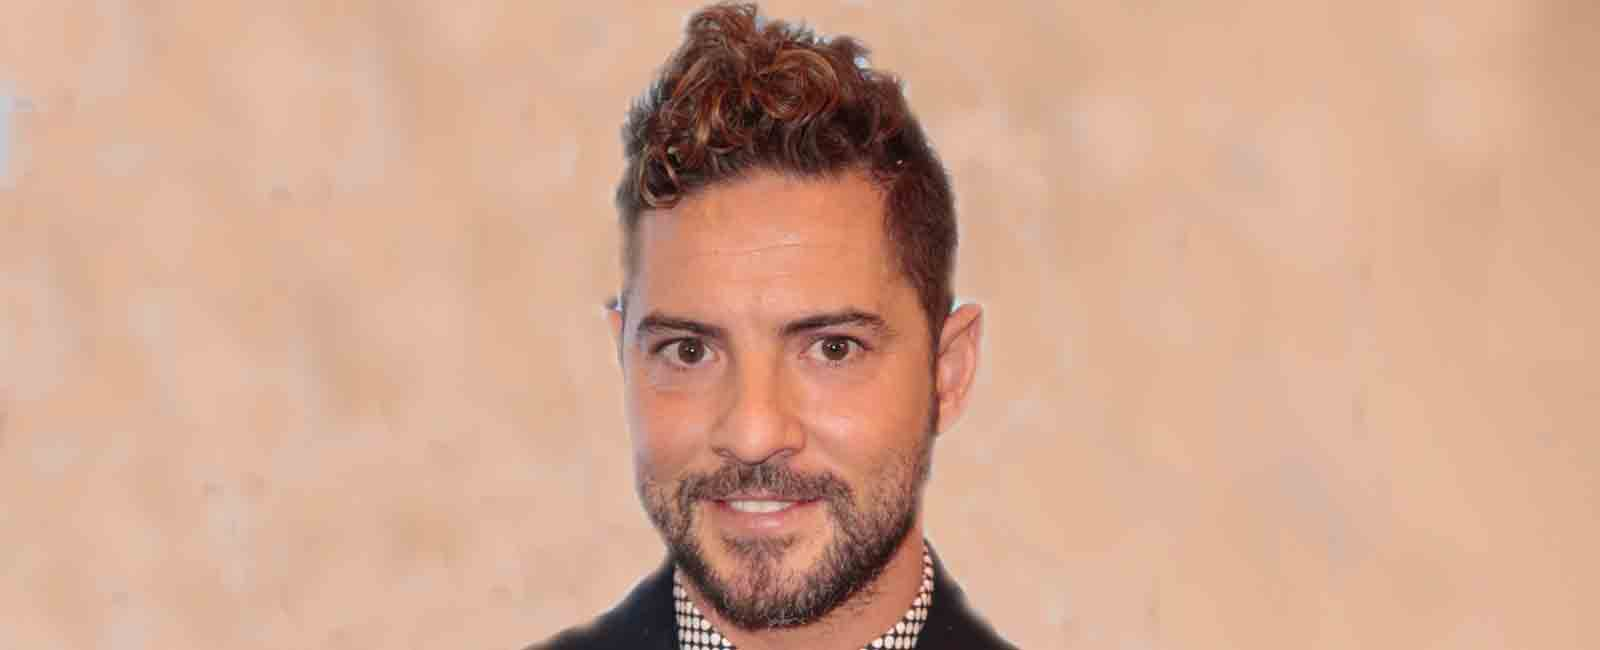 Así eran, Así son: David Bisbal 2006-2016 – VIDEO